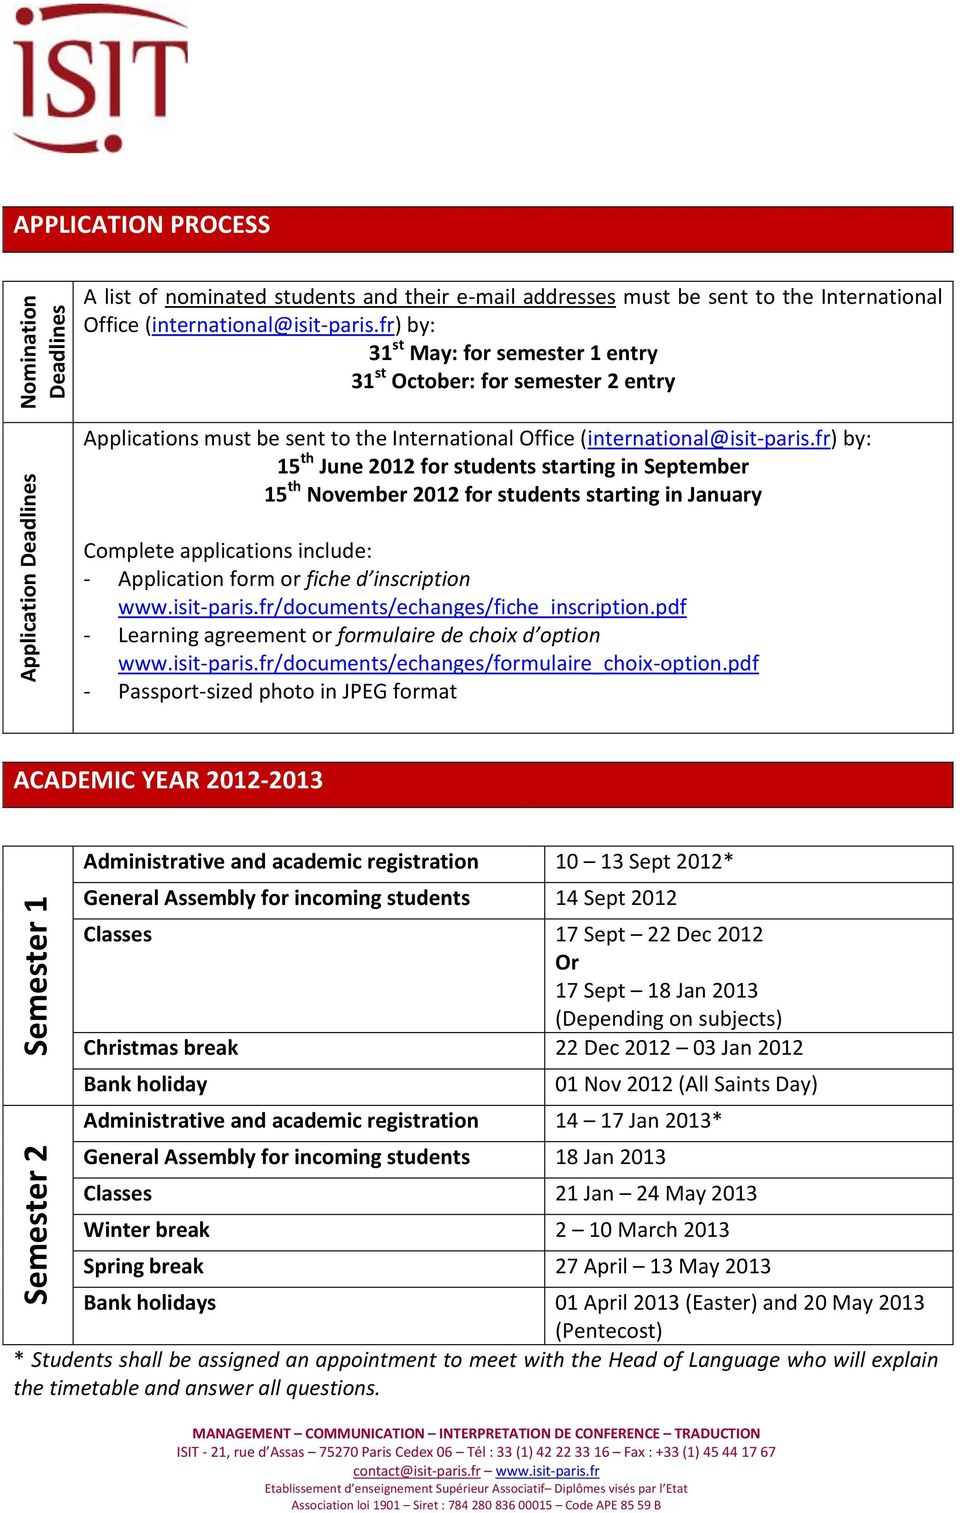 fr) by: 15 th June 2012 for students starting in September 15 th November 2012 for students starting in January Complete applications include: - Application form or fiche d inscription www.isit-paris.